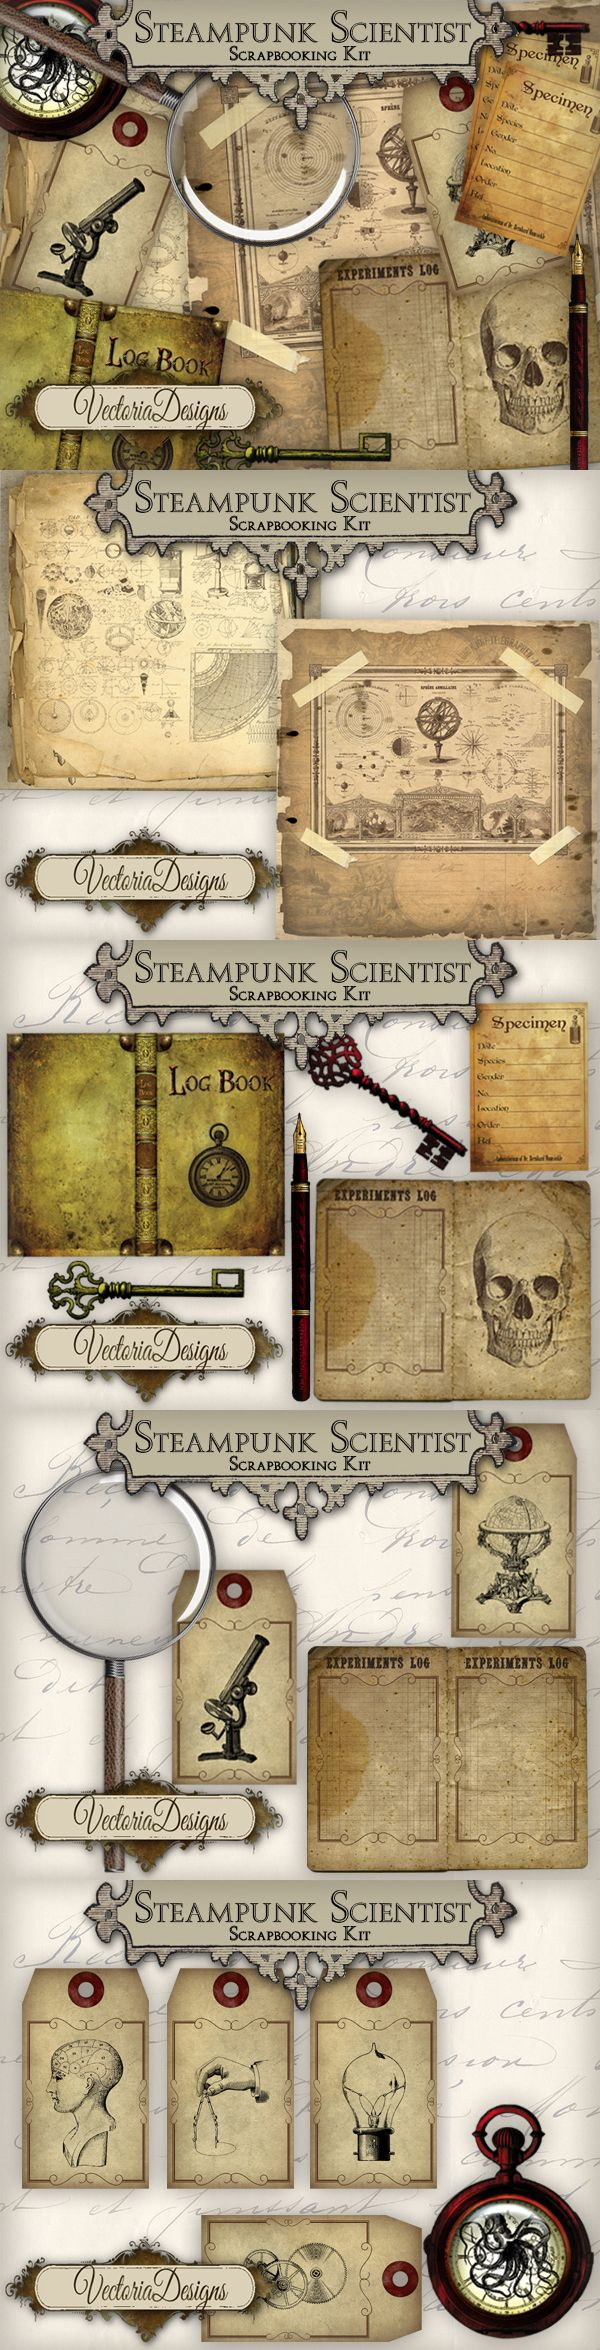 Steampunk Scientist Scrapbooking Kit by VectoriaDesigns.deviantart.com